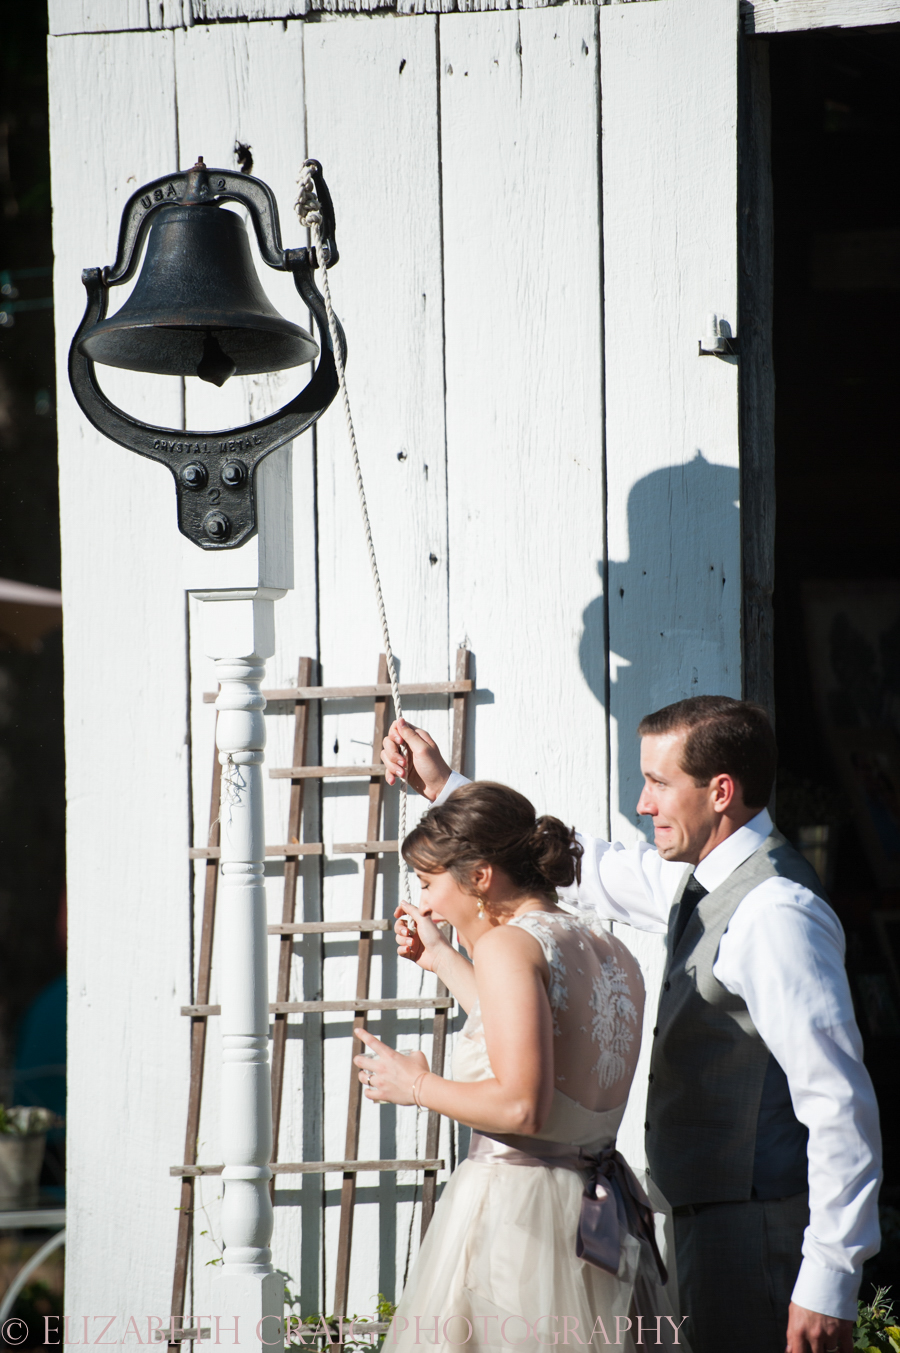 Shady Elms Farm Weddings and Receptions Elizabeth Craig Photography-0129